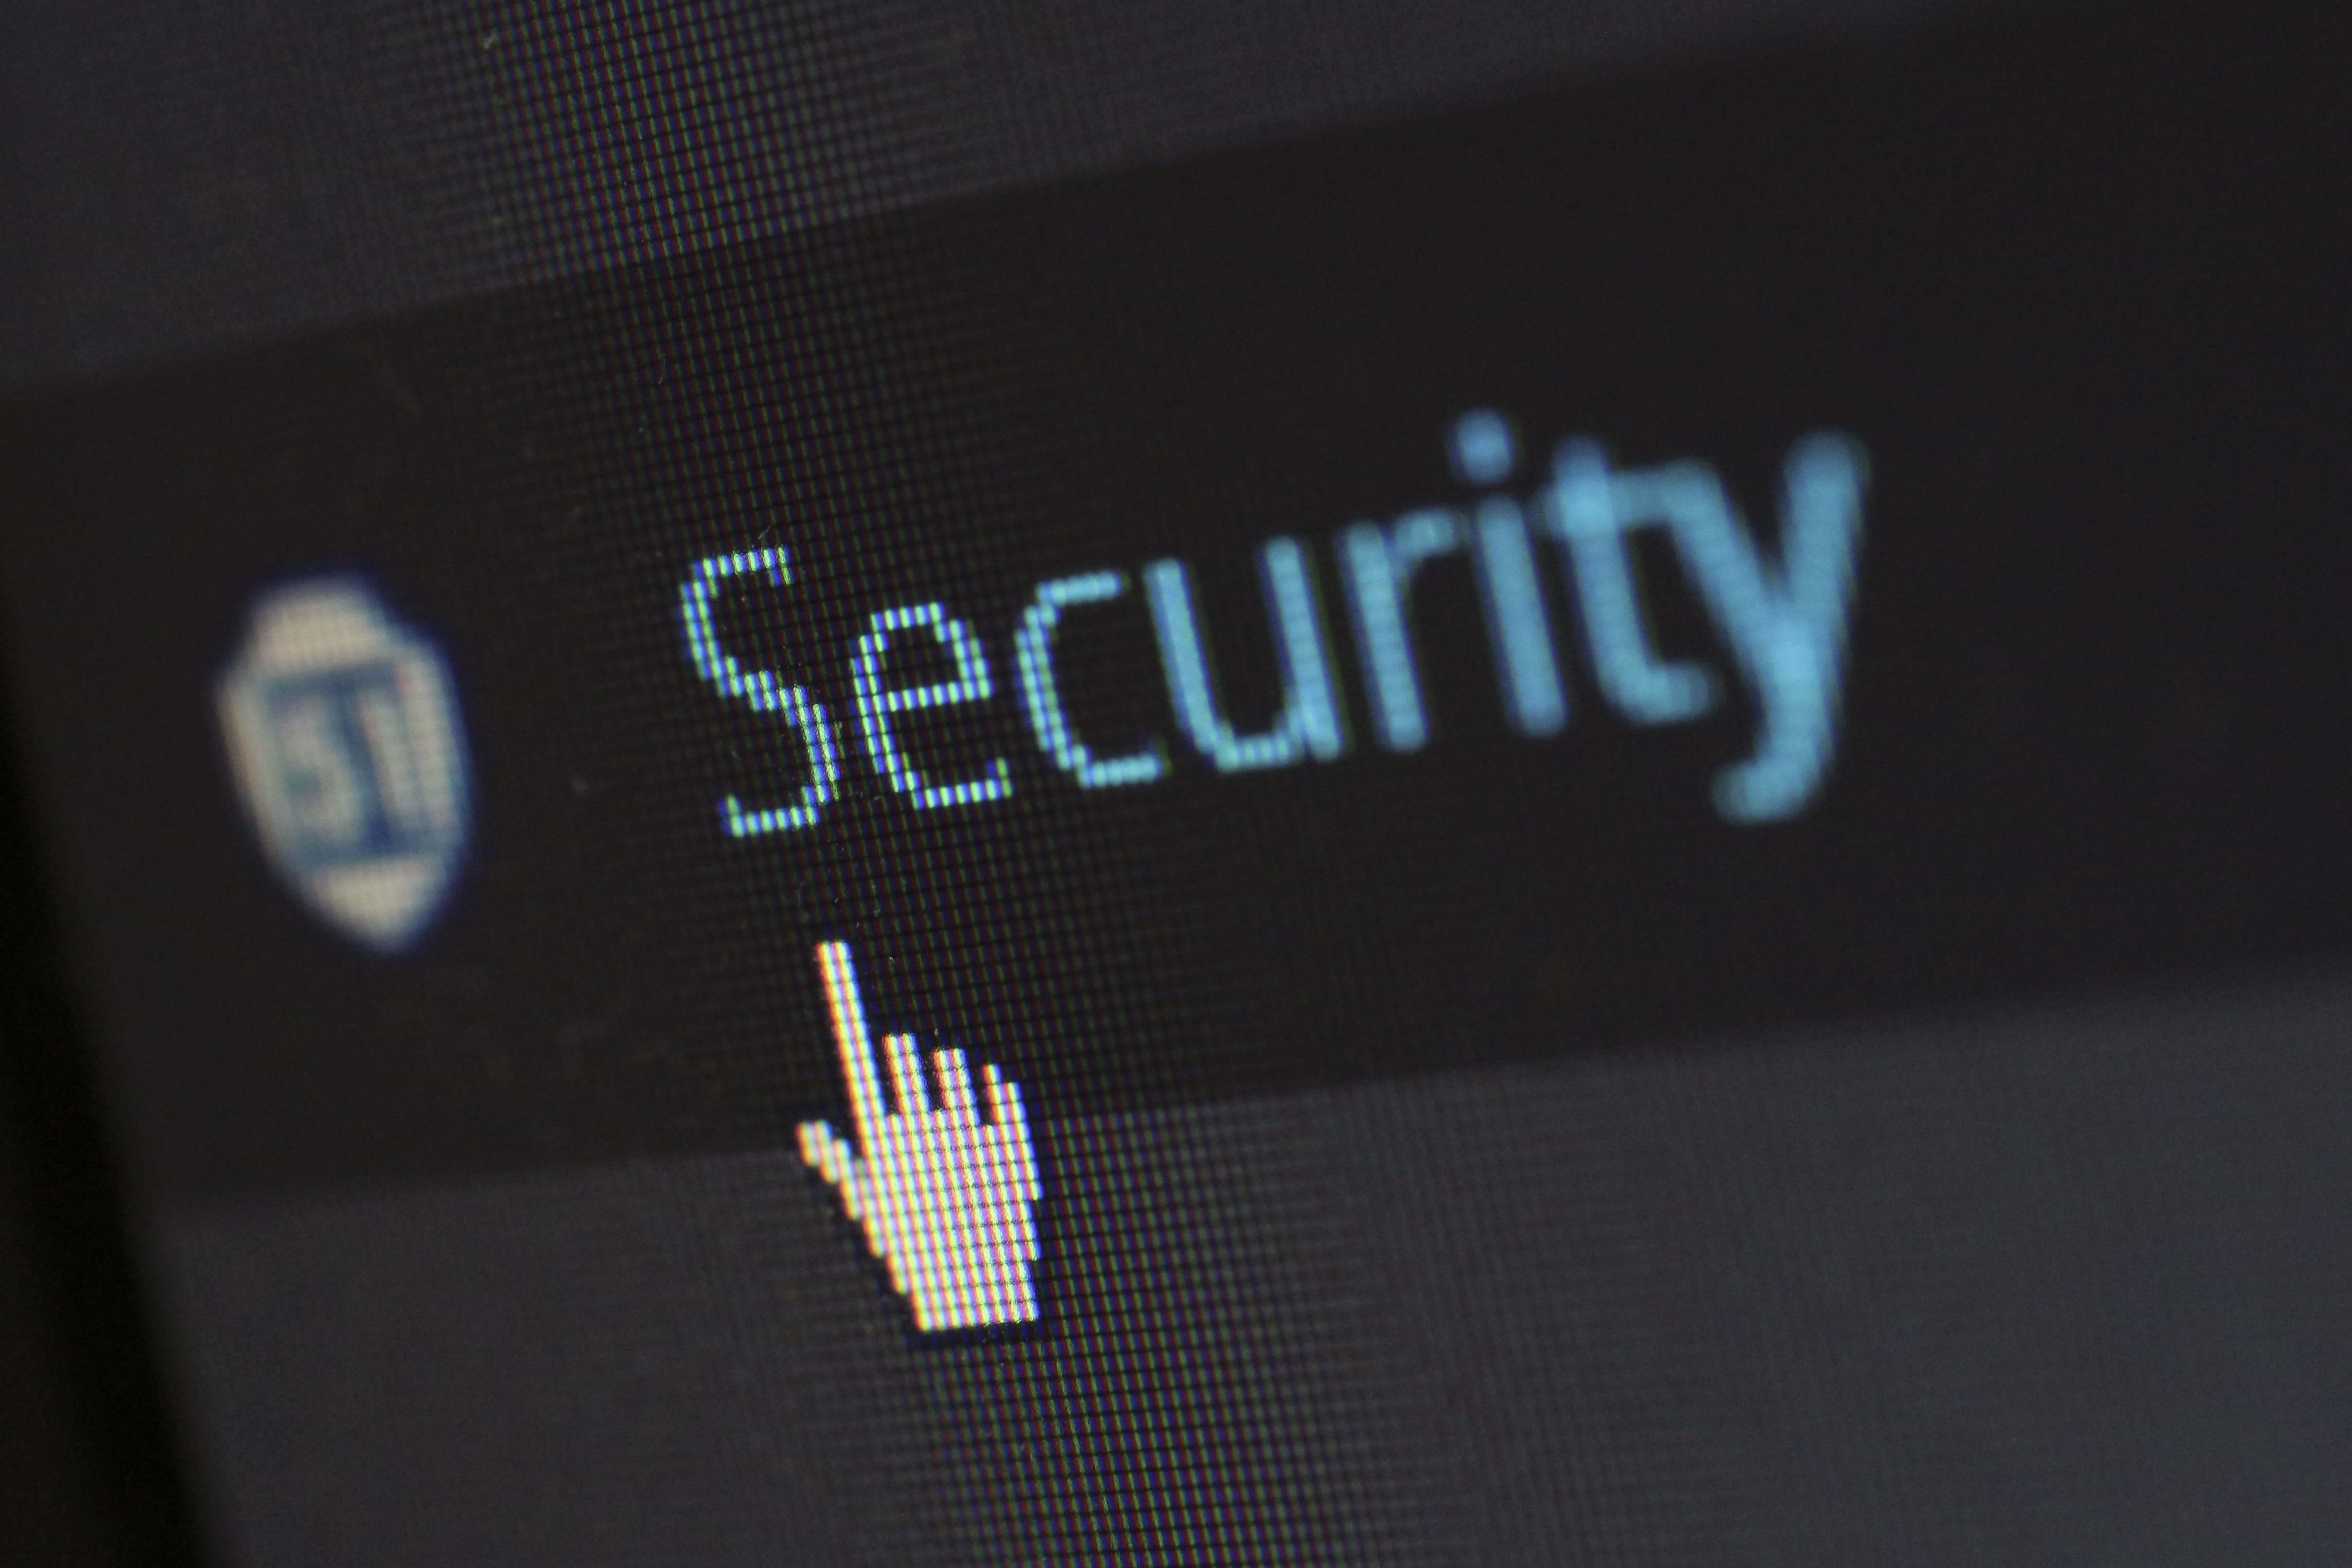 Cybersecurity Threats and the Regulatory Response